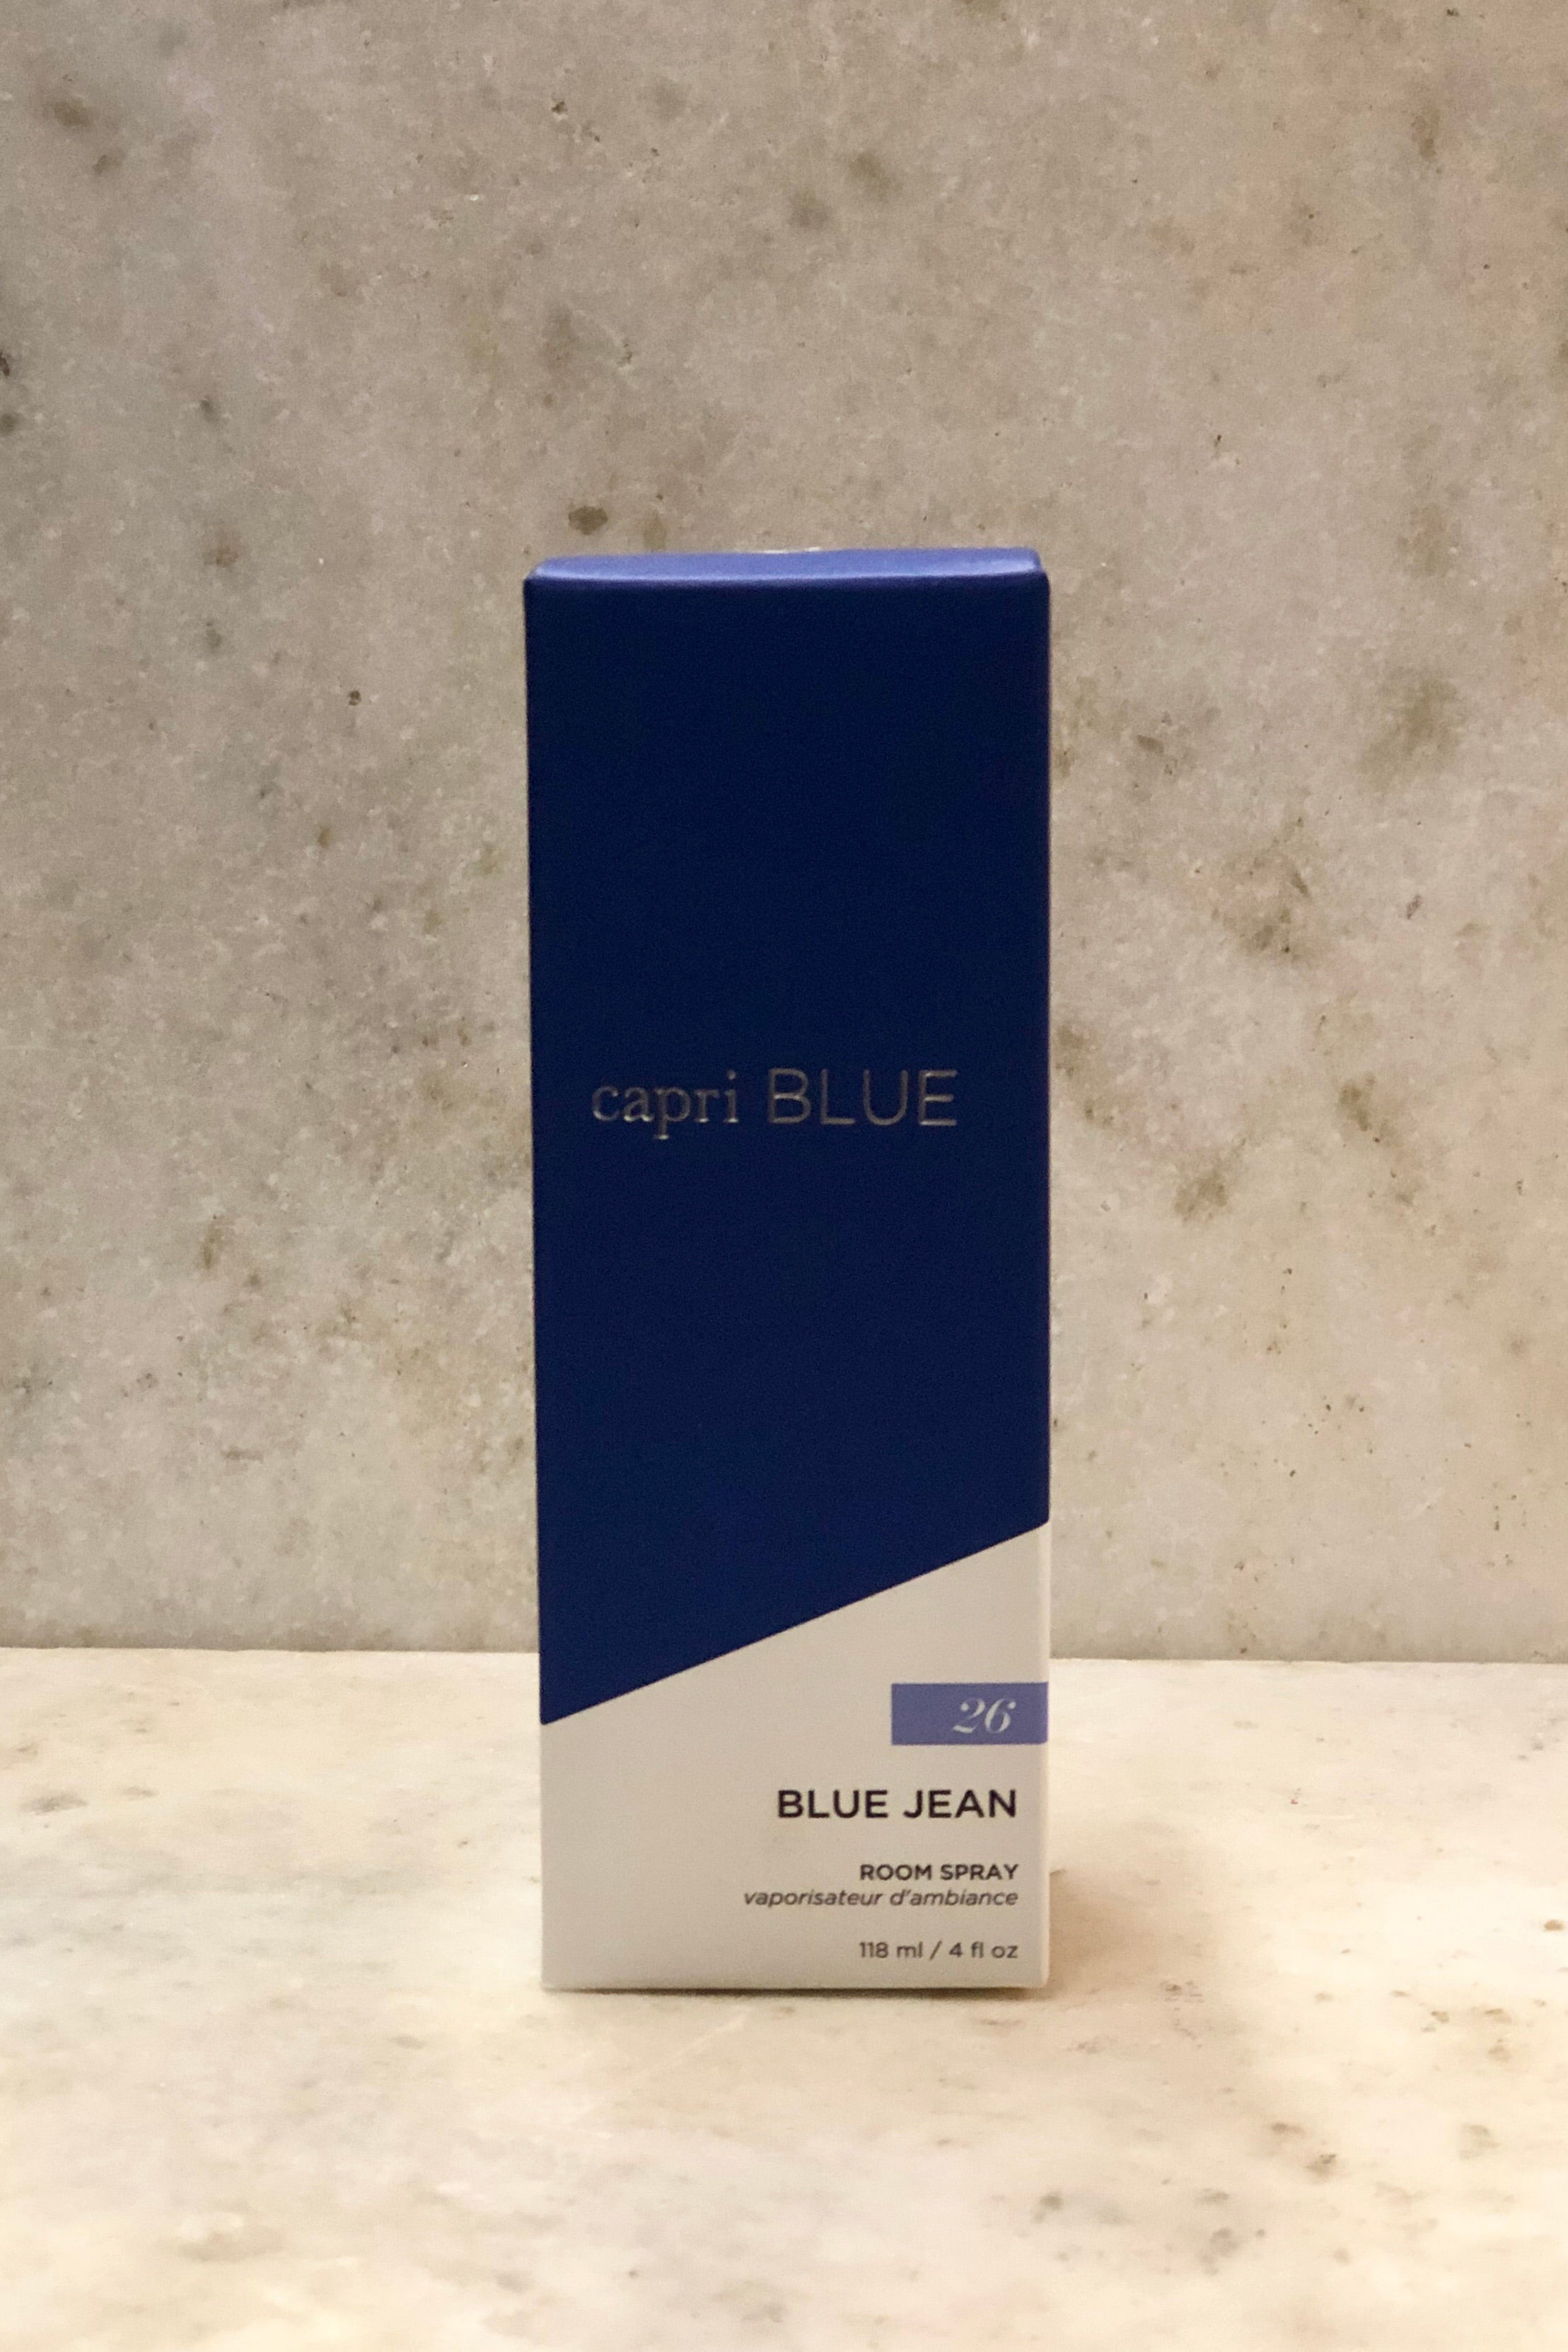 Blue Jean Room Spray